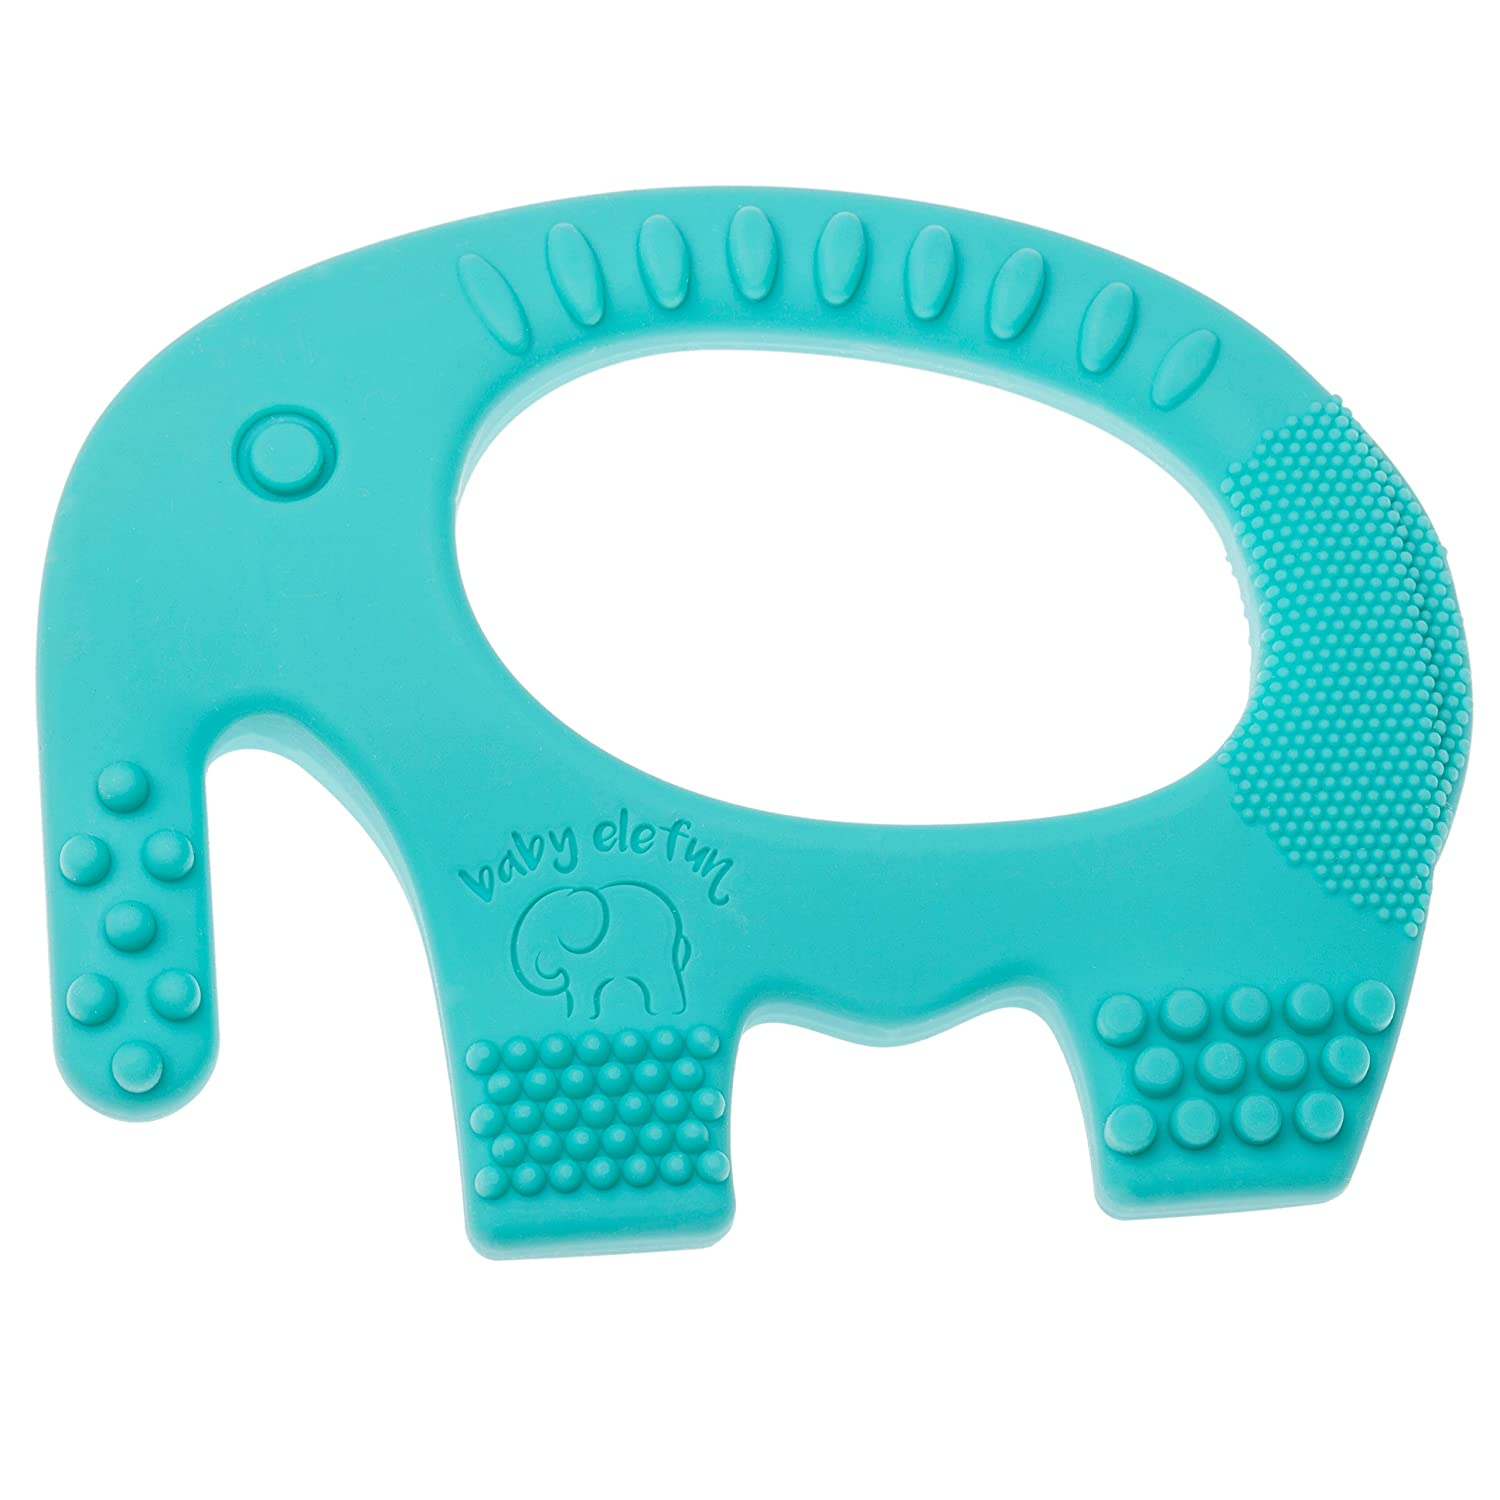 Baby Teething Toys - Adorable Turquoise Silicone Elephant Teether BPA Free - Best For Girl Or Boy Infant Newborn 3 6 12 Months / 1 Year Old Cool Sensory Learning Baby Shower